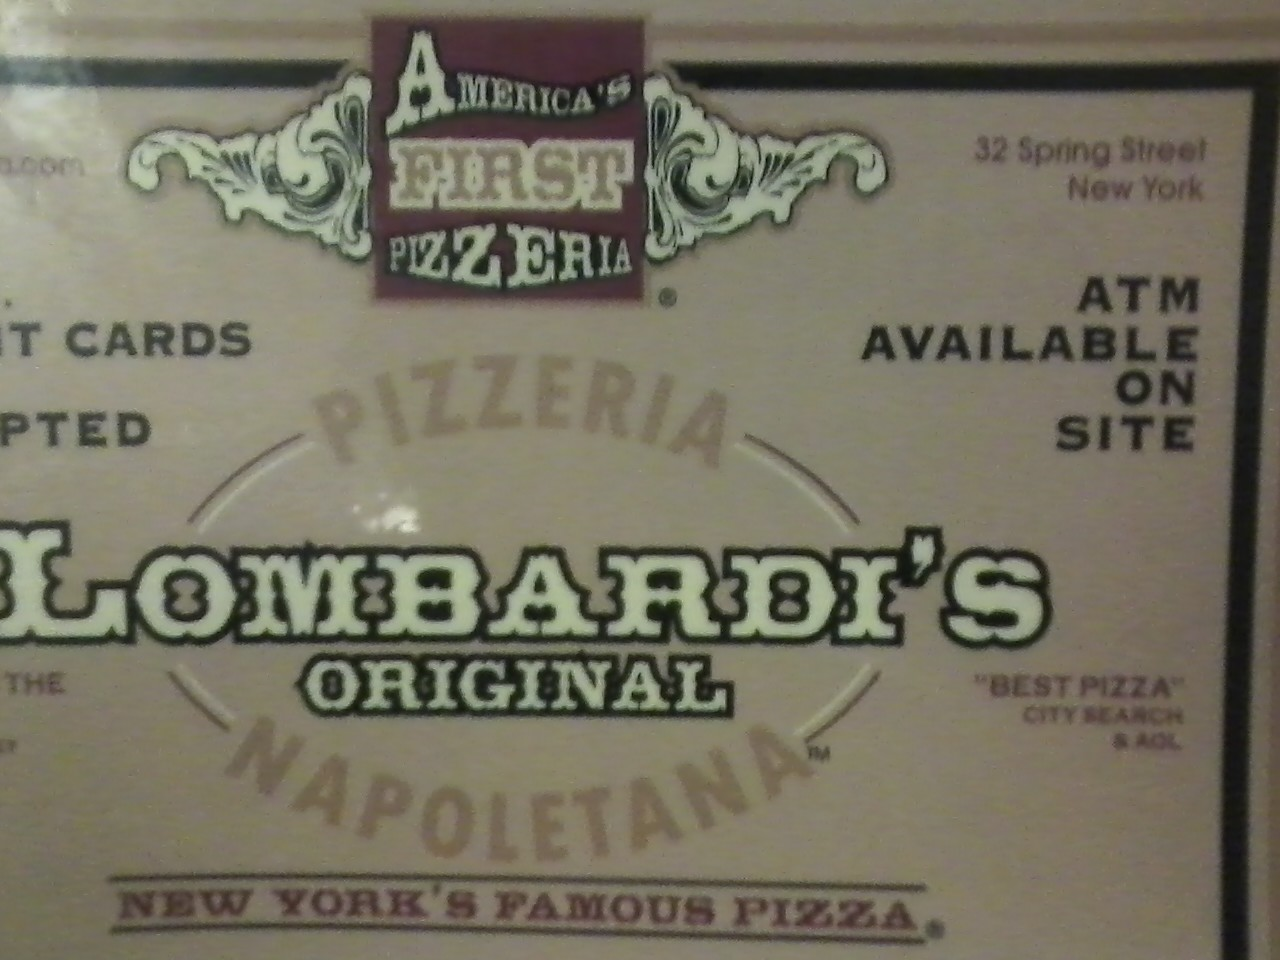 America's First Pizzeria, as seen in NYC by my Pizza Pal, Adam.